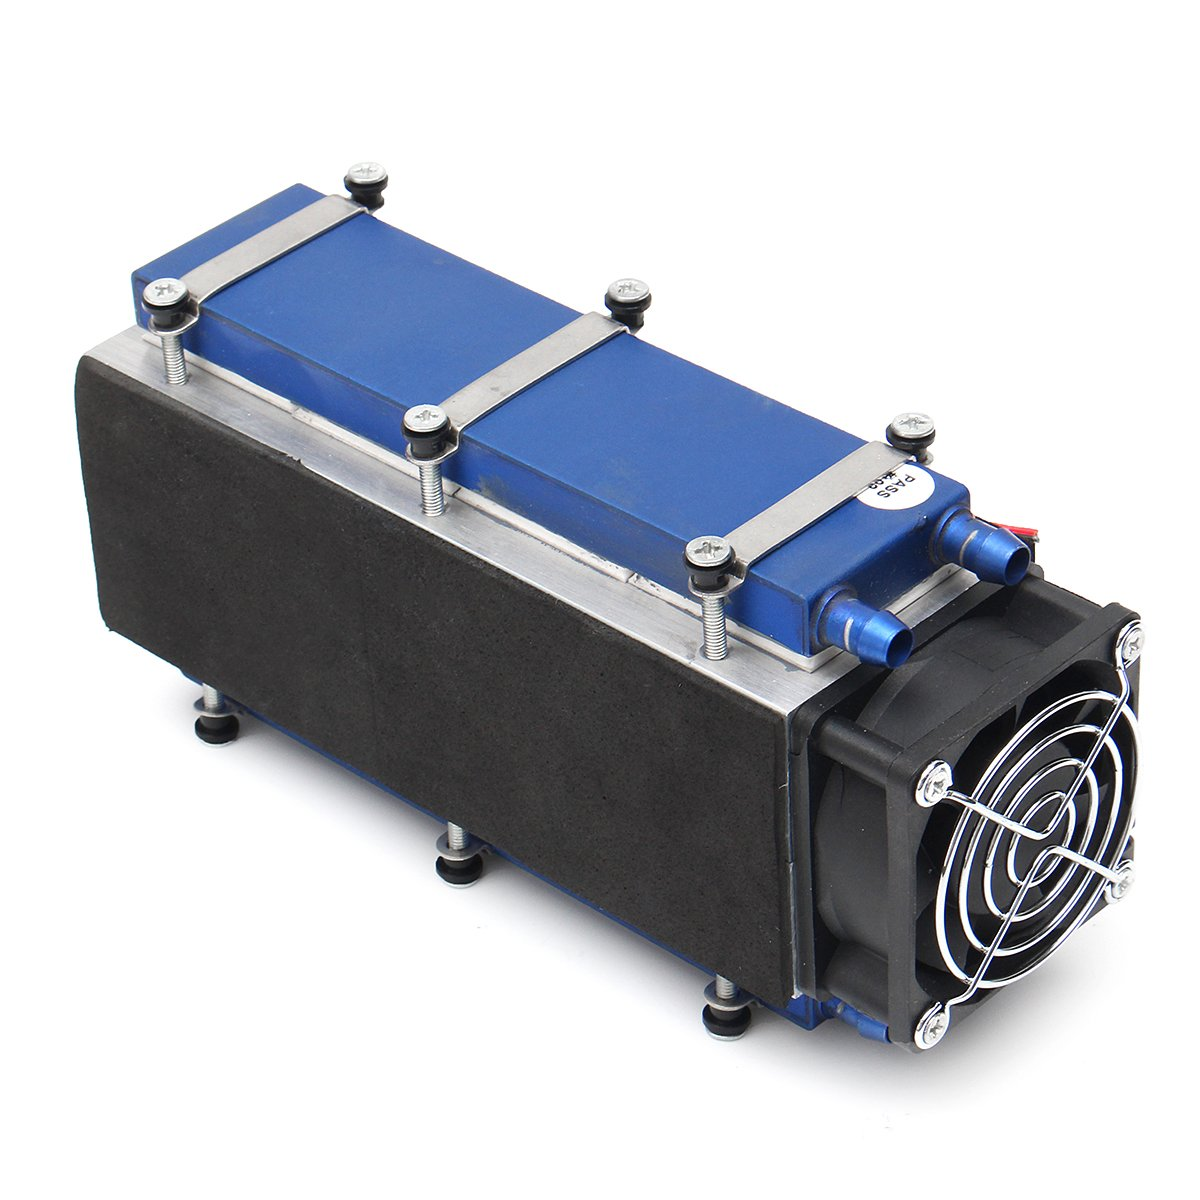 Dc12v 60a 576w 8 Chip Tec1 12706 Thermoelectric Cooler Radiator